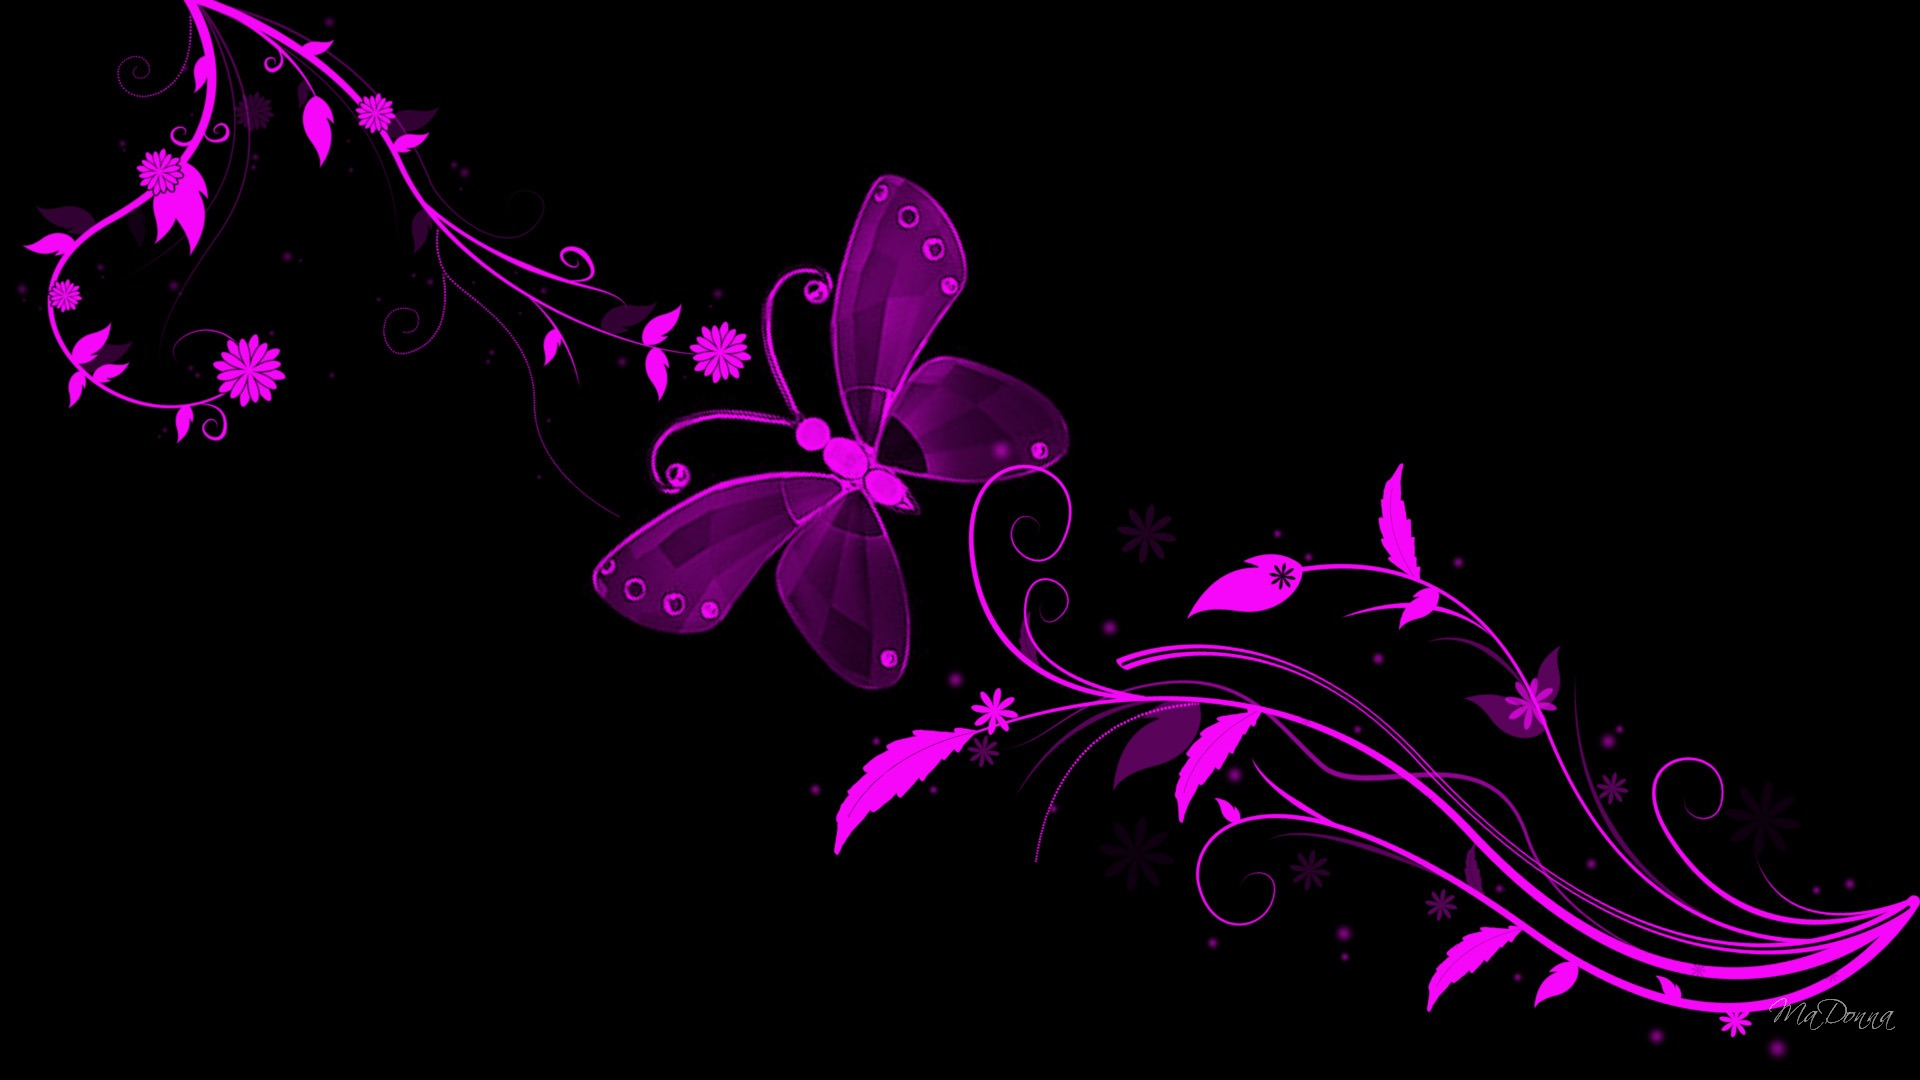 Abstract Wallpaper Photos Of Love Flowers Wallpaper